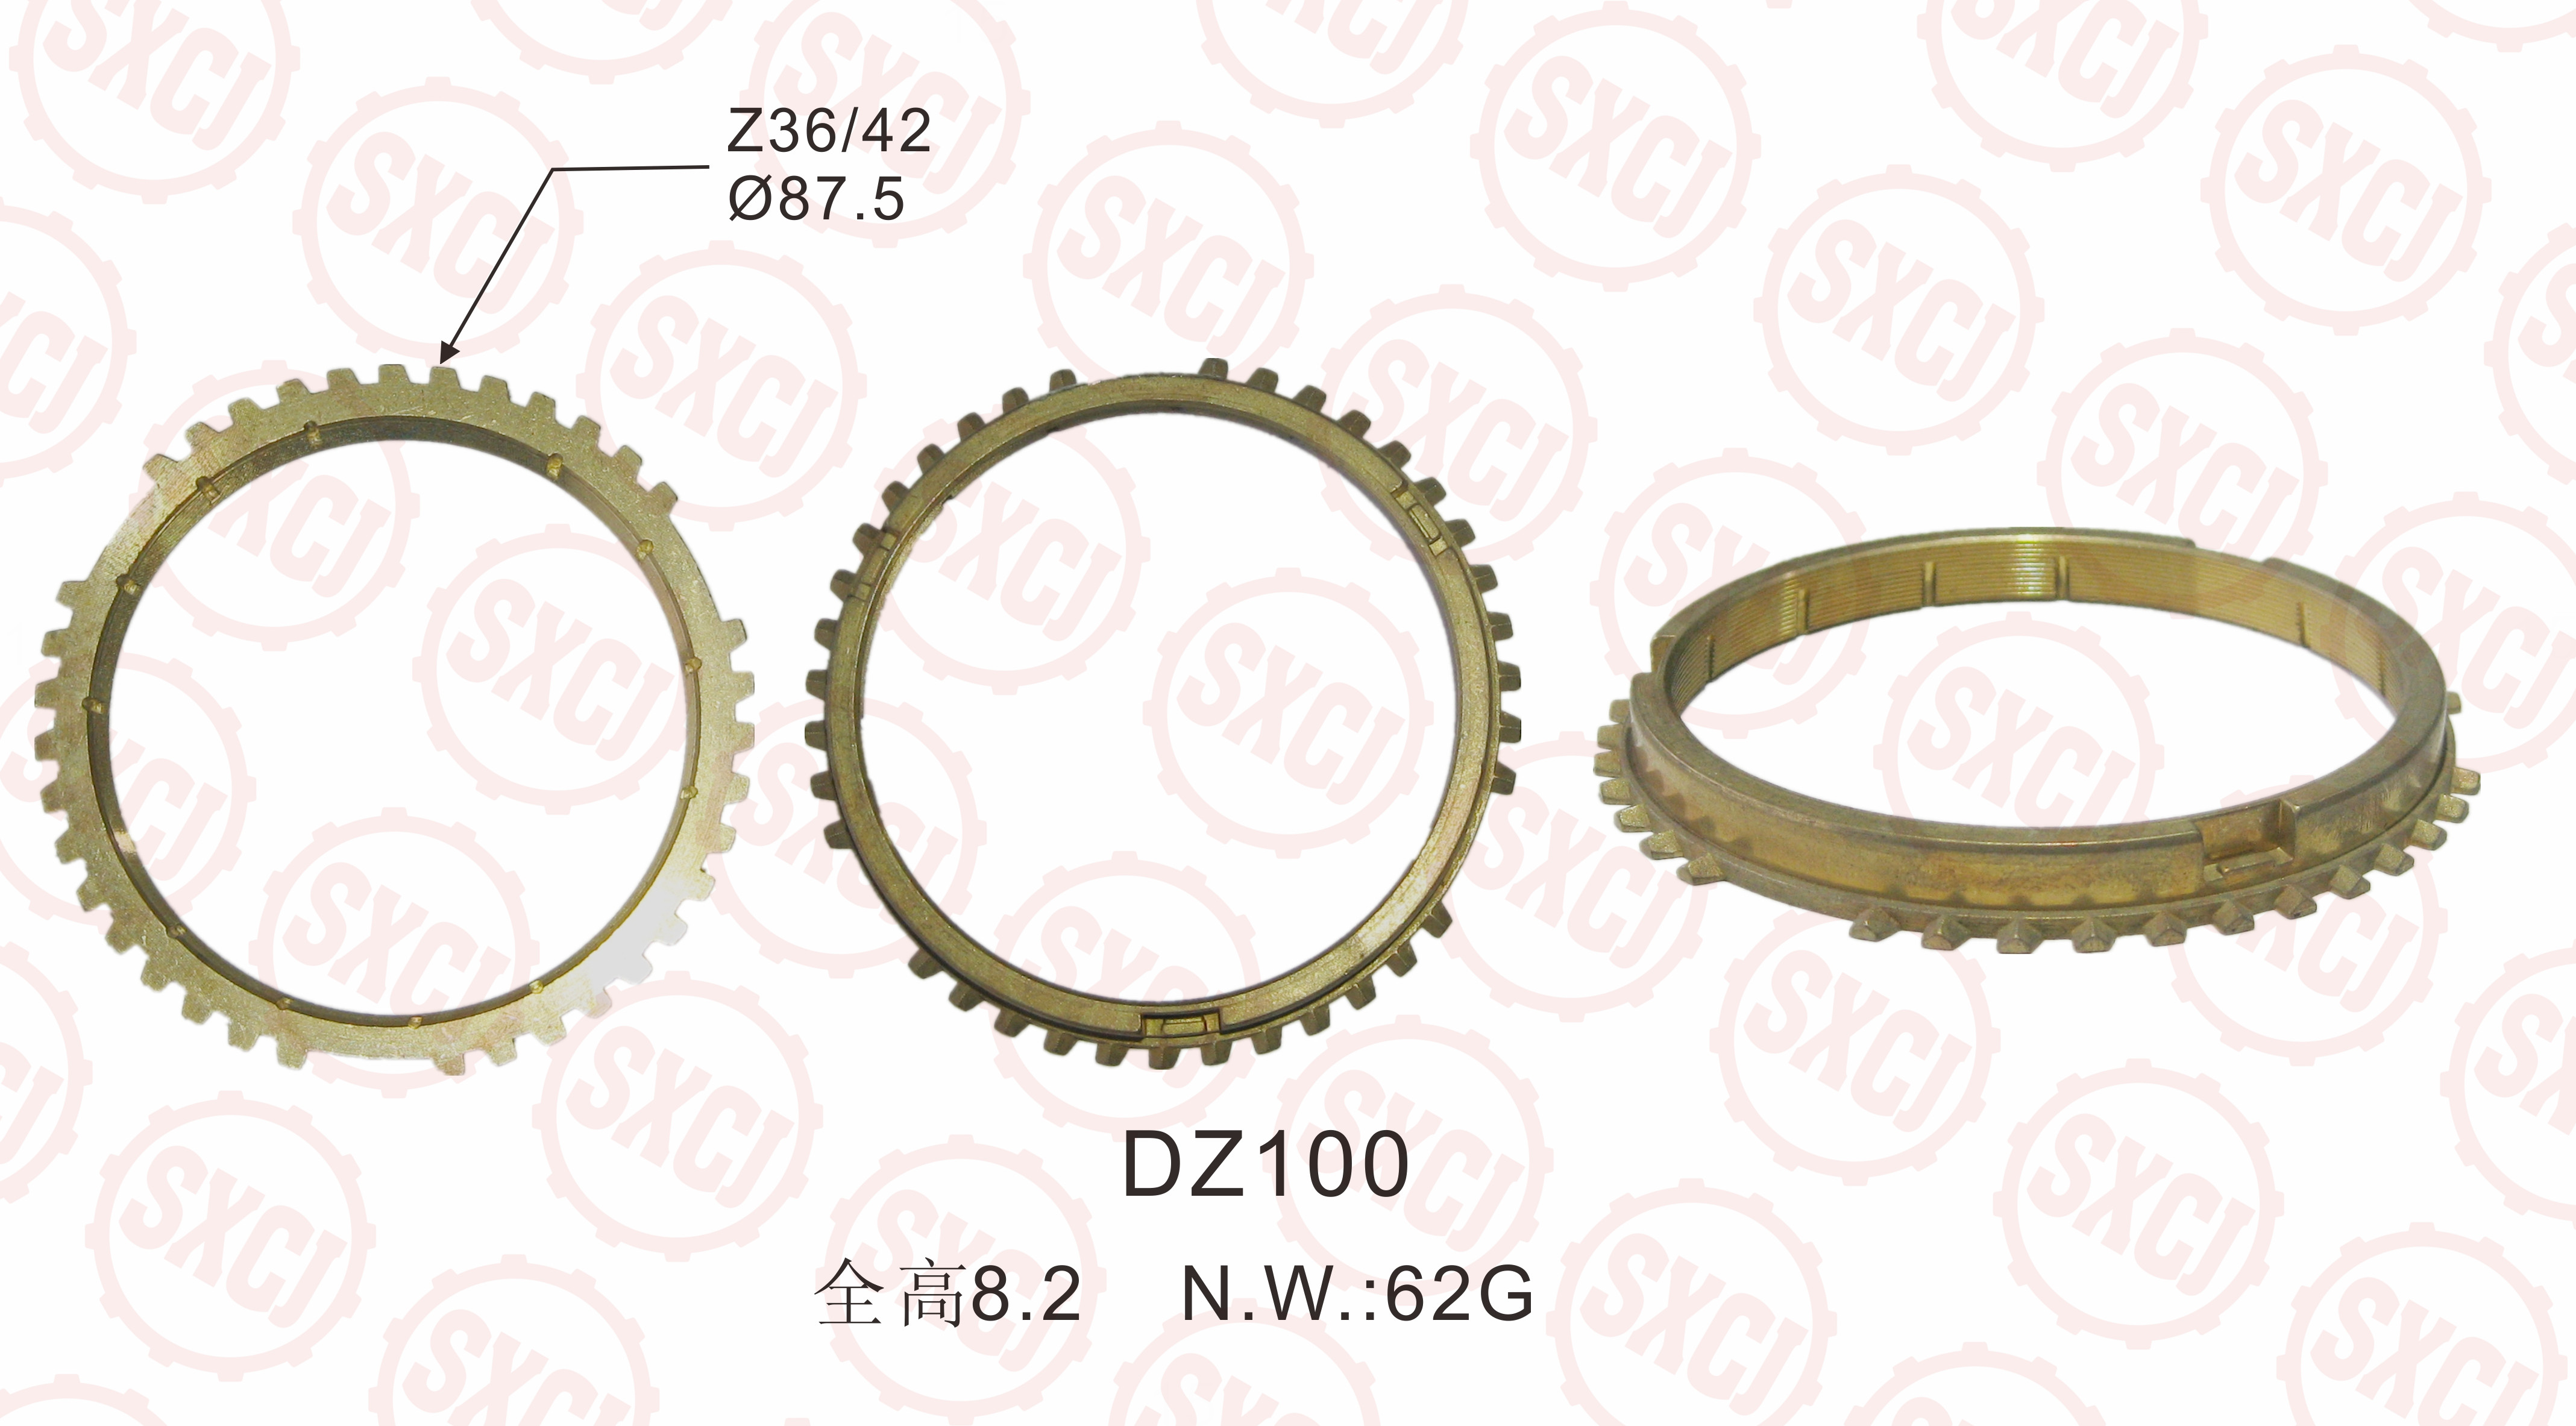 Transmission Parts Gear Rings